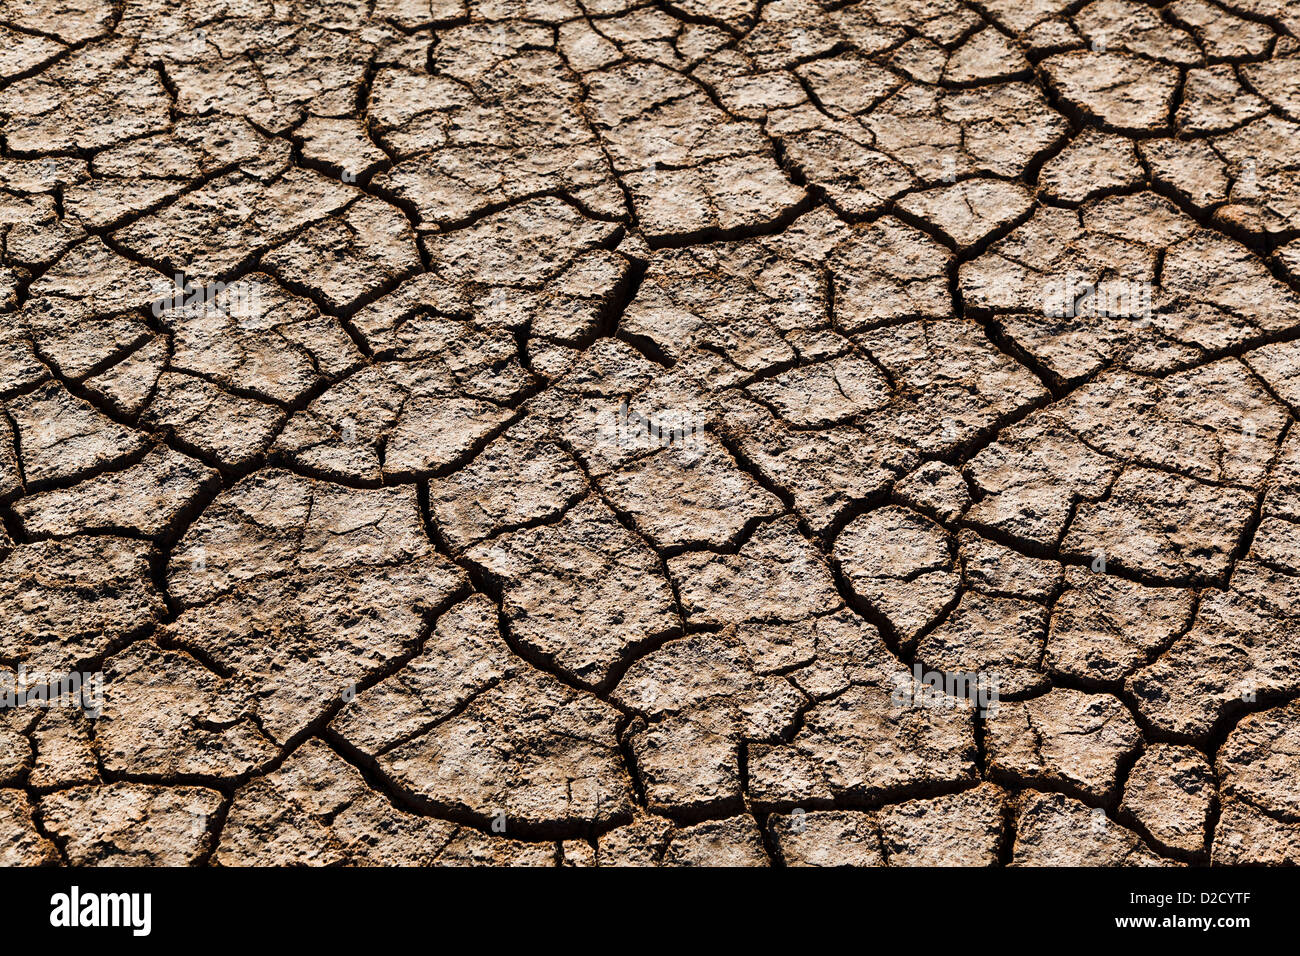 Australia, Western Australia, Wyndham, cracked and dried mud on the flood plains at King River Road - Stock Image